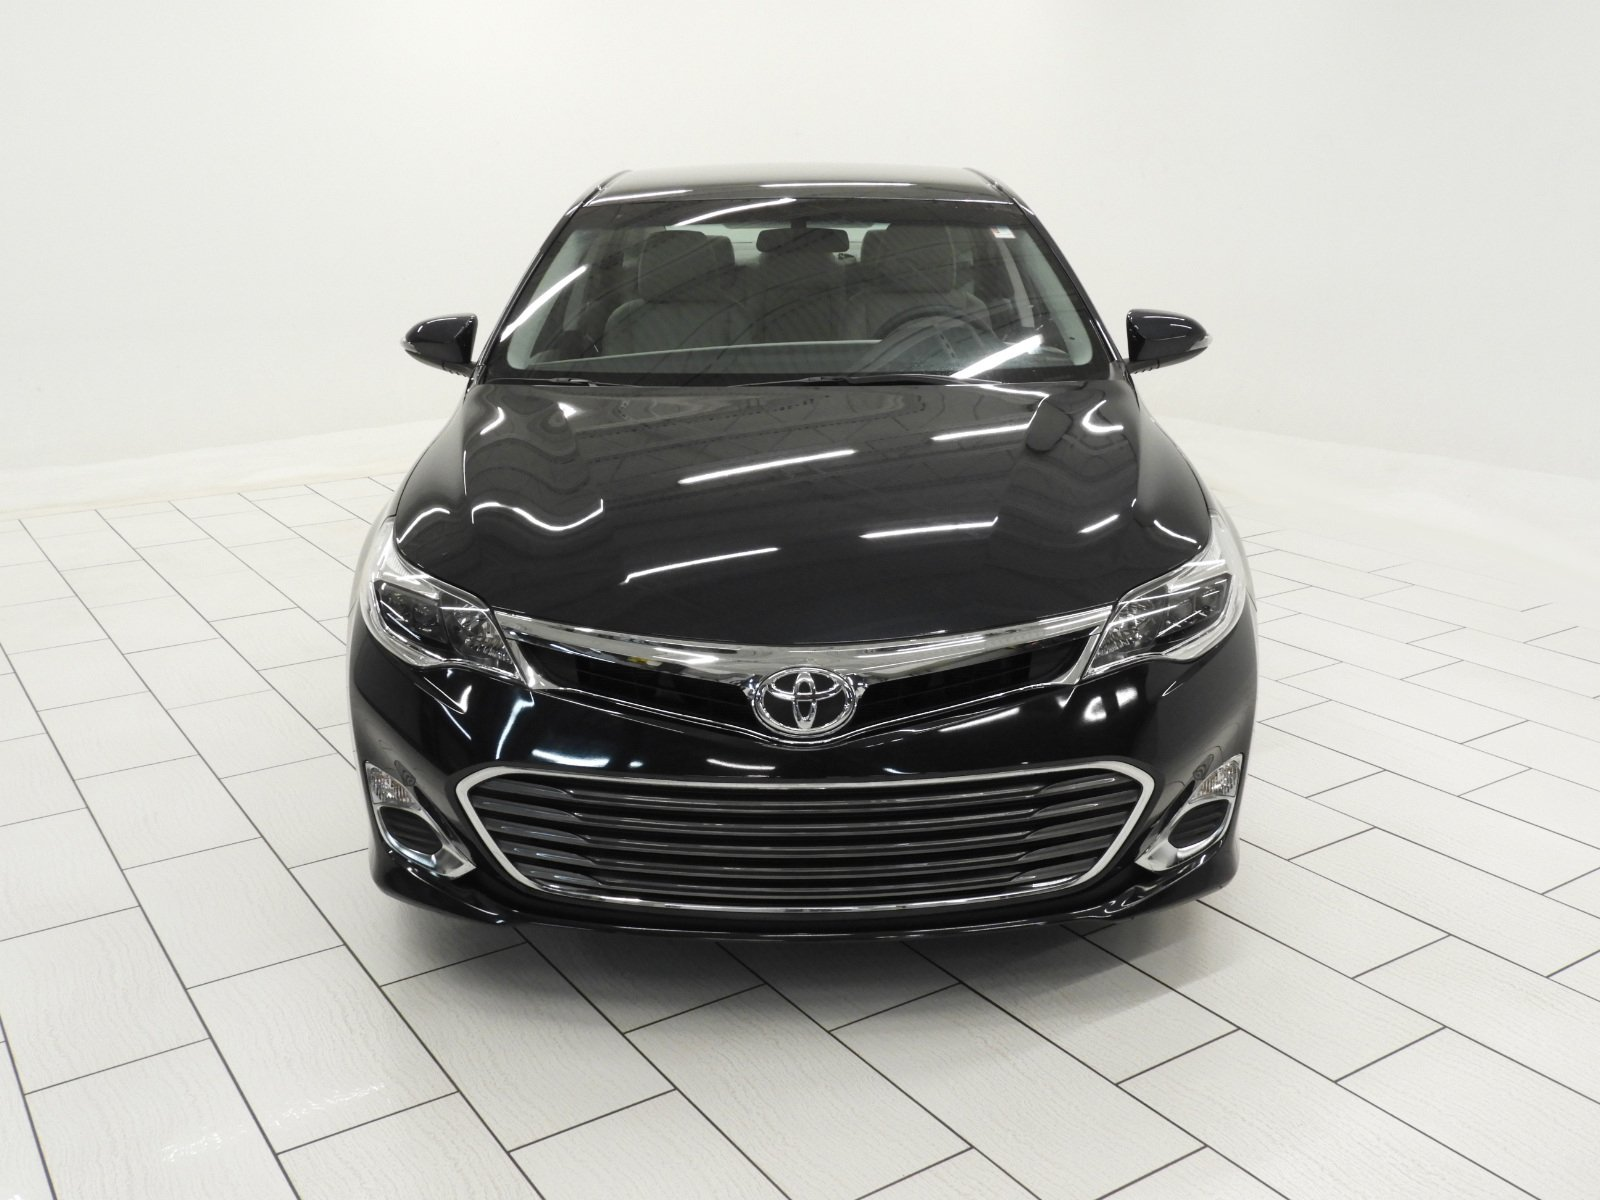 Certified Pre Owned 2015 Toyota Avalon XLE Premium 4dr Car in